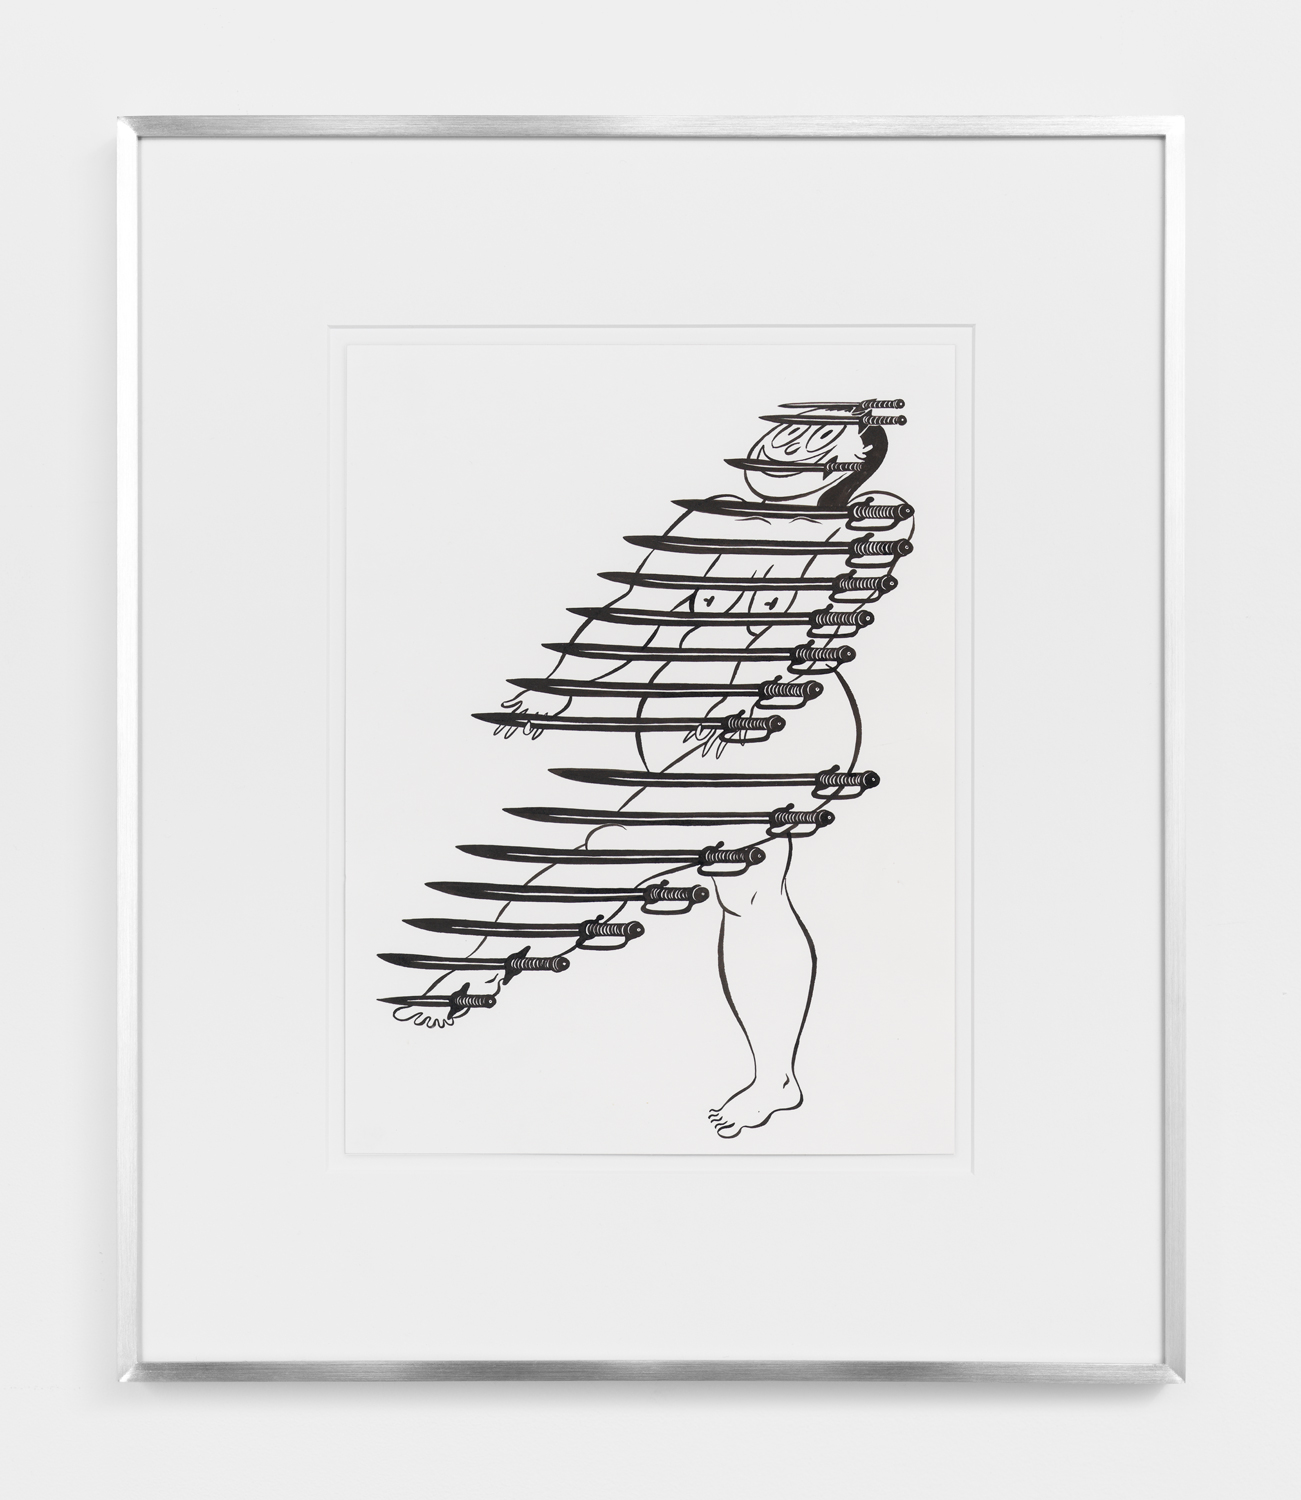 Ebecho Muslimova, Fatebe Arms Display, 2017, ink on paper, 12h x 9w in.